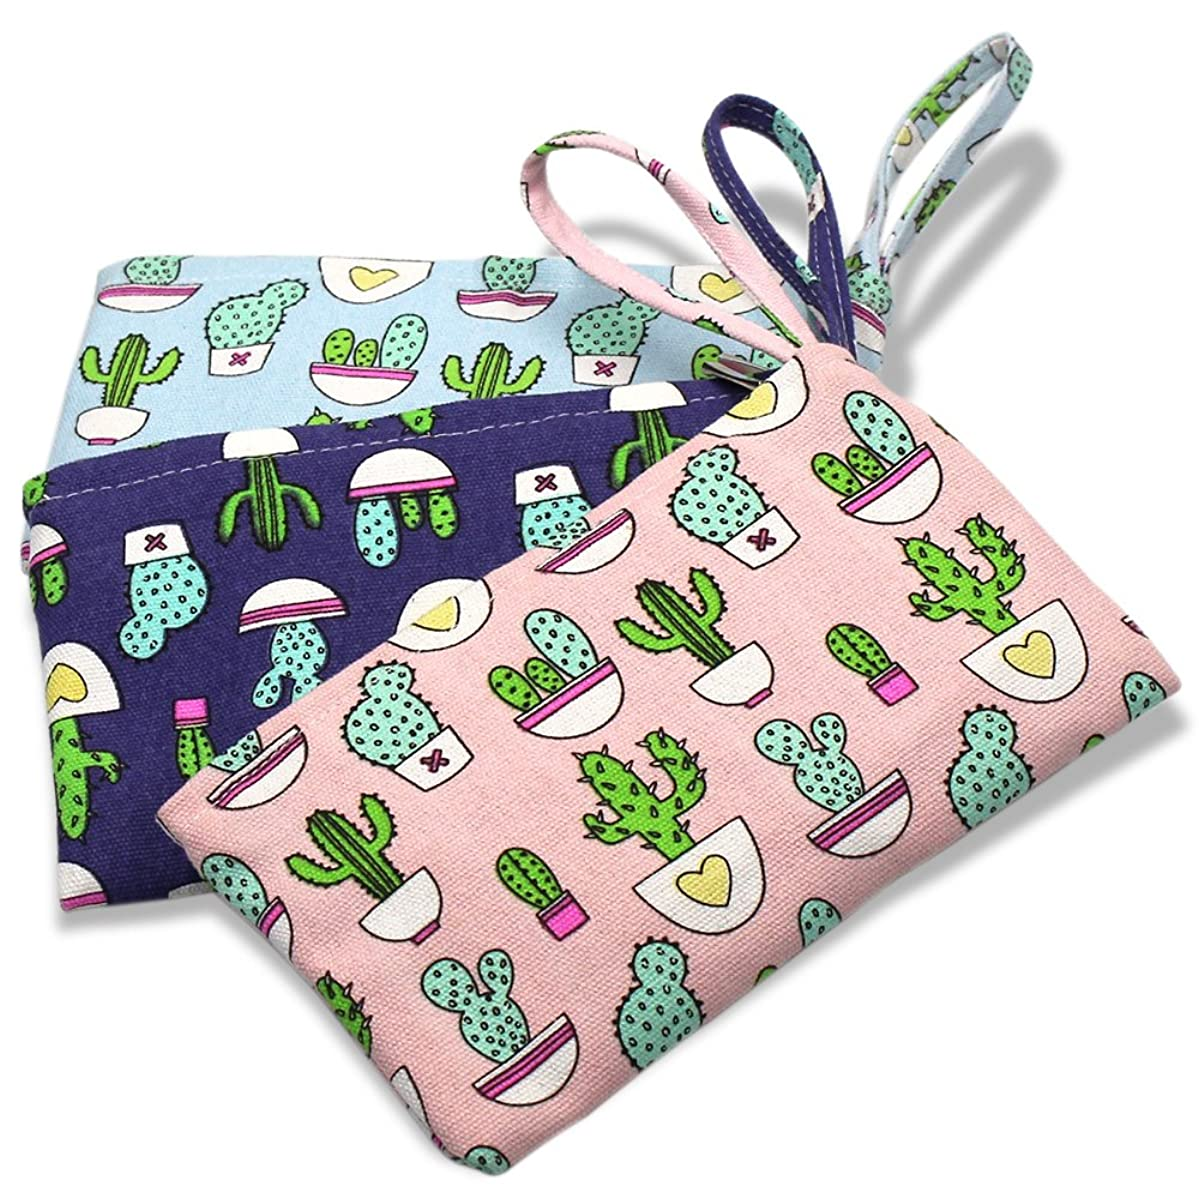 Set of 3 Cactus Pattern Canvas Zipper Coin Purse Wallet Bag Cosmetic Pen Pencil Stationery Pouch Bag Case by Erlvery DaMain